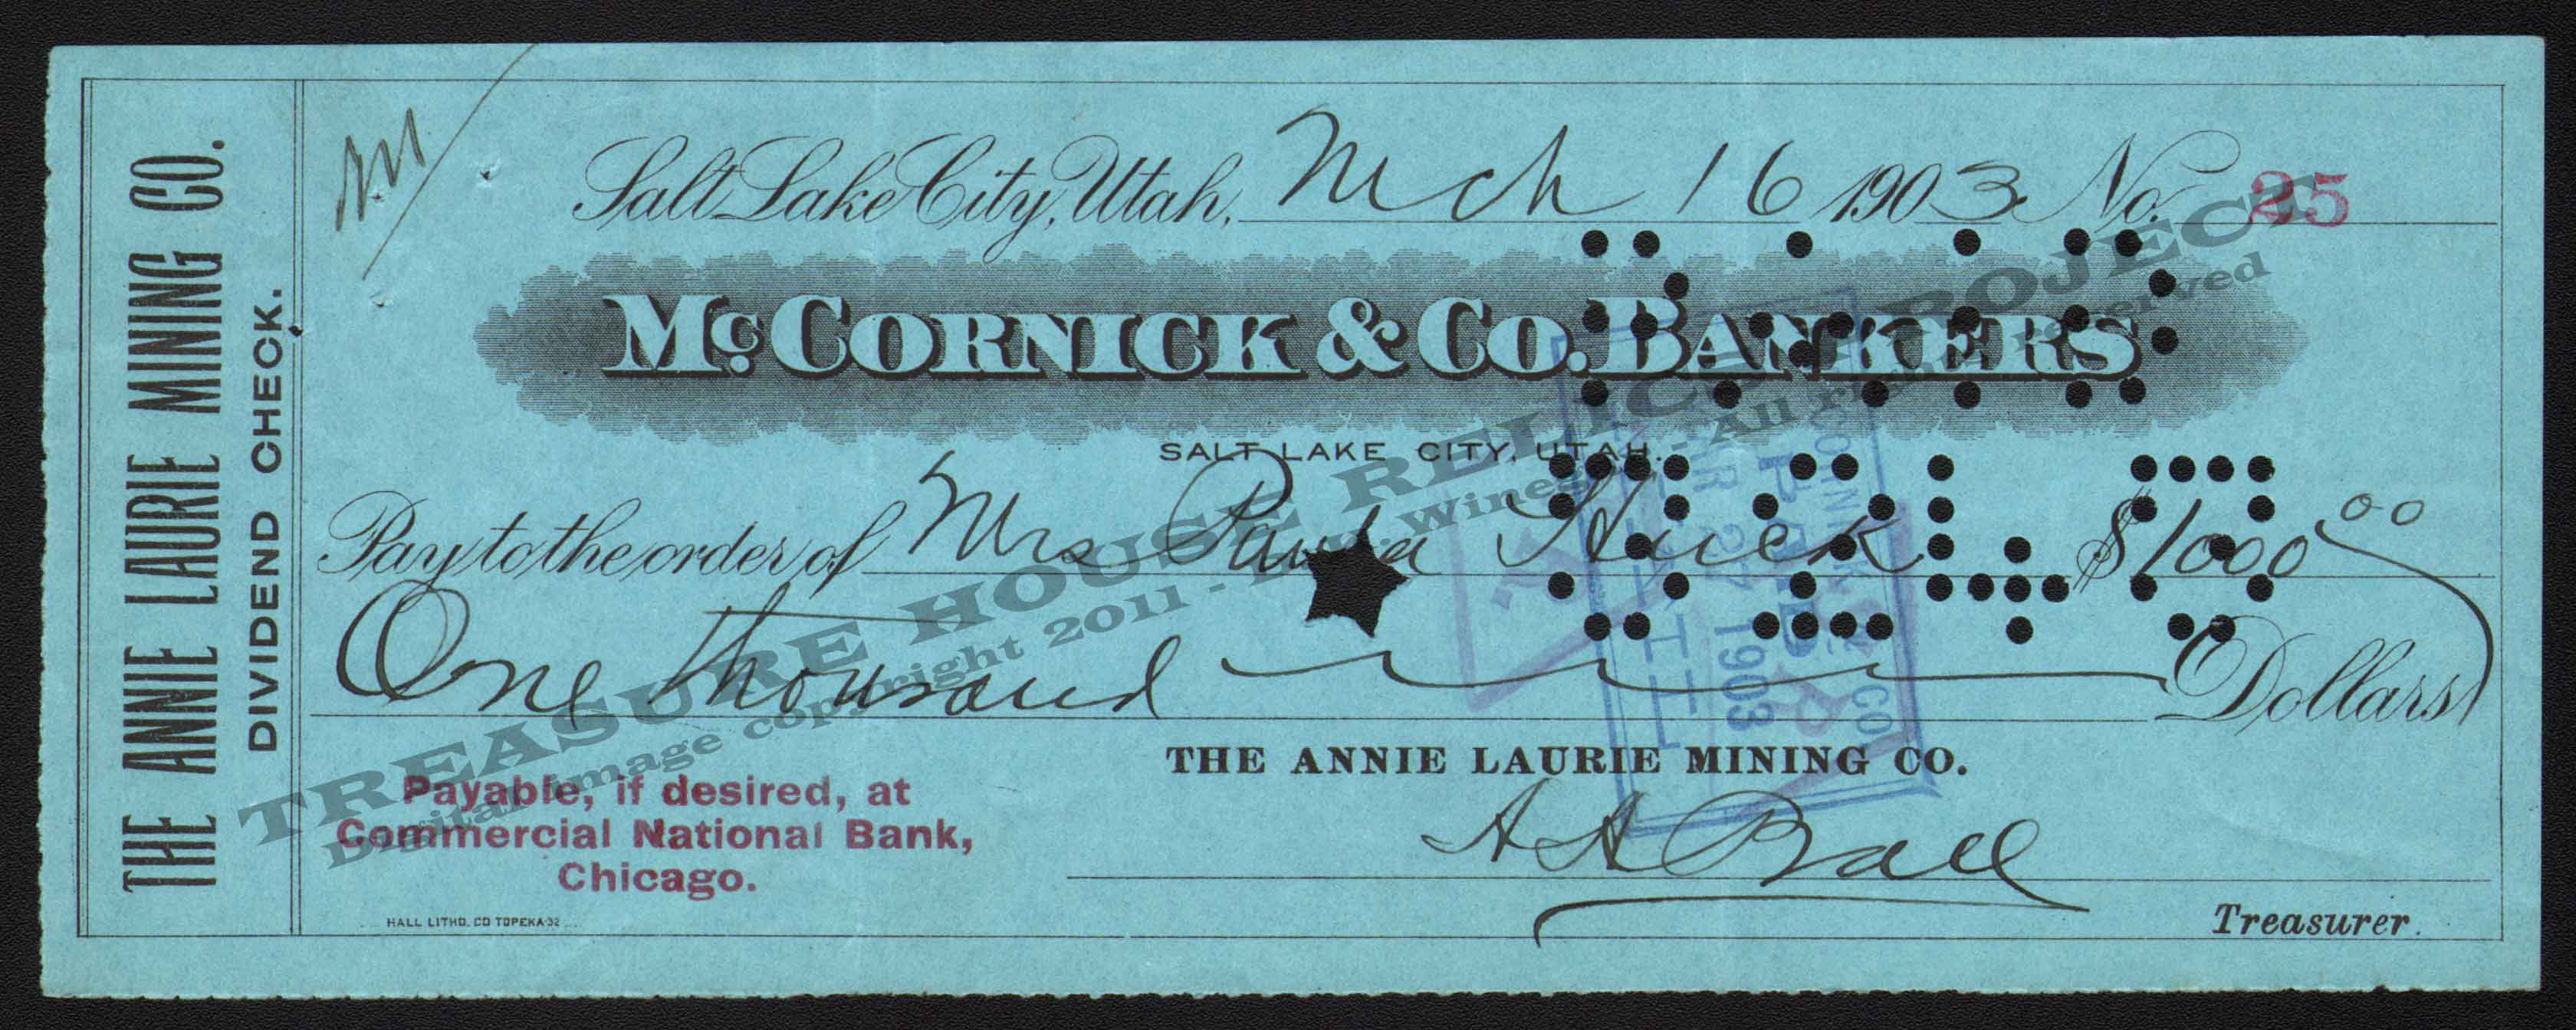 CHECK_-_ANNIE_LAURIE_MINING_CO_DIVIDEND_25_1903_400_EMBOSS.jpg